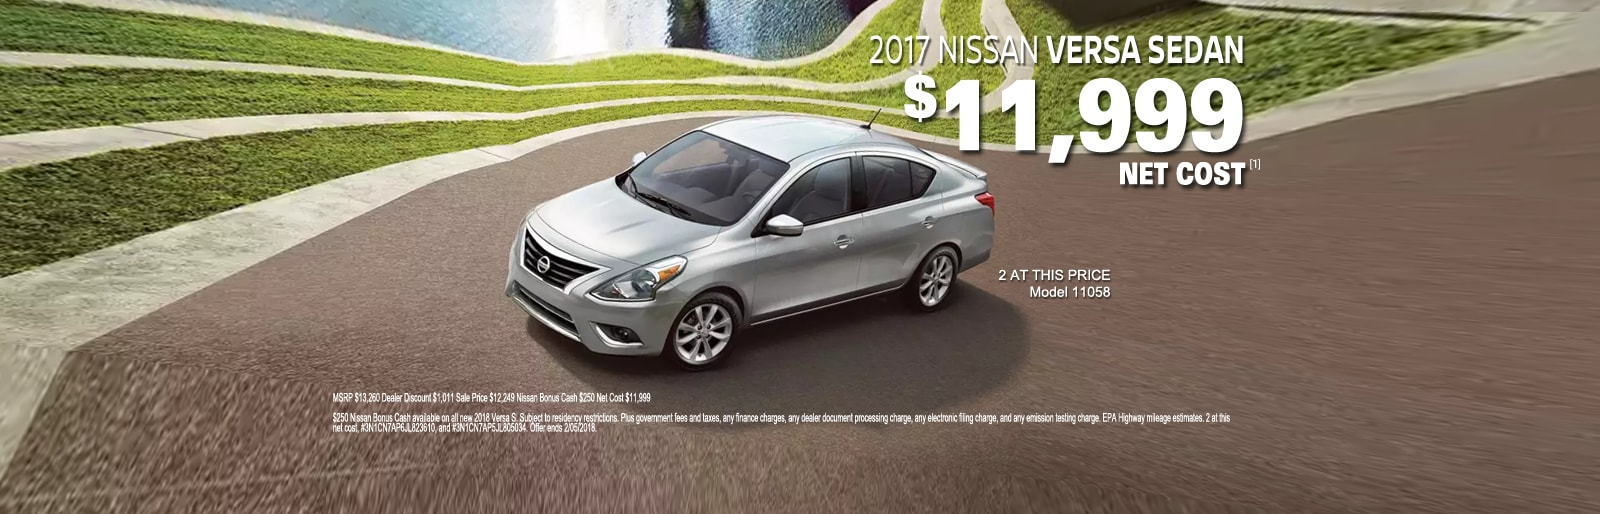 Central Valley Nissan New Nissan Cars Amp Used Cars Modesto